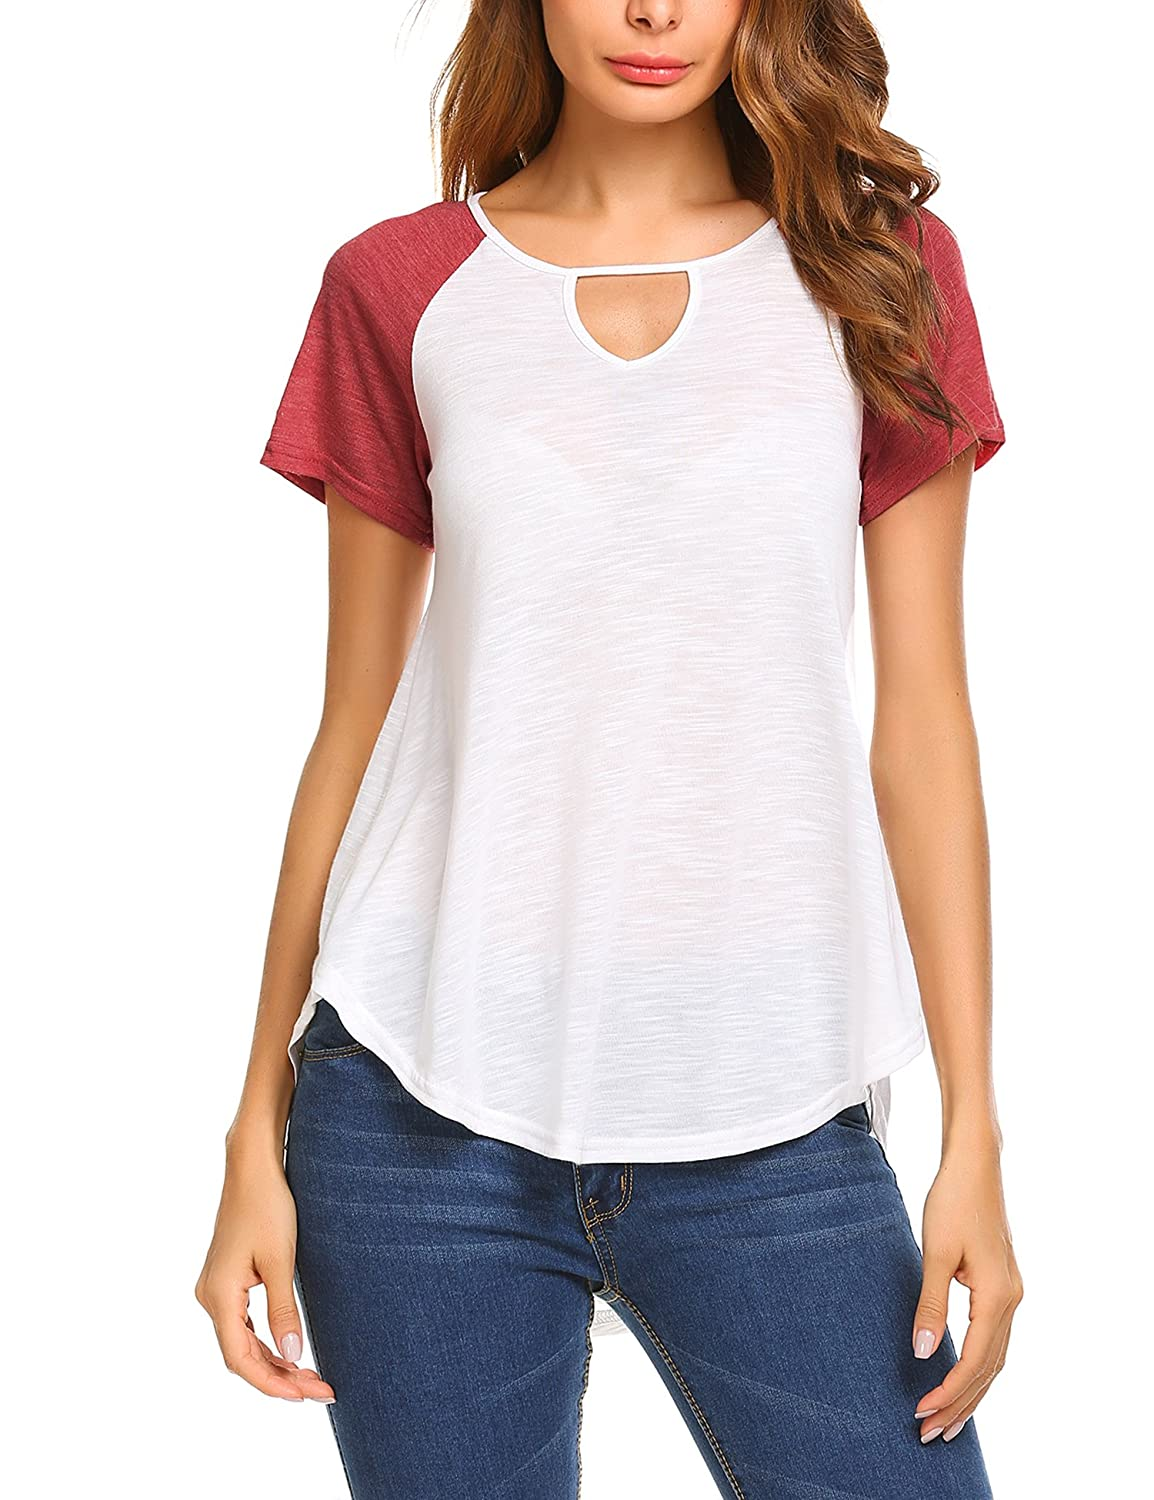 Zeagoo Women's Casual Round Neck Loose Fit Short Sleeve T-Shirt Blouse Tops